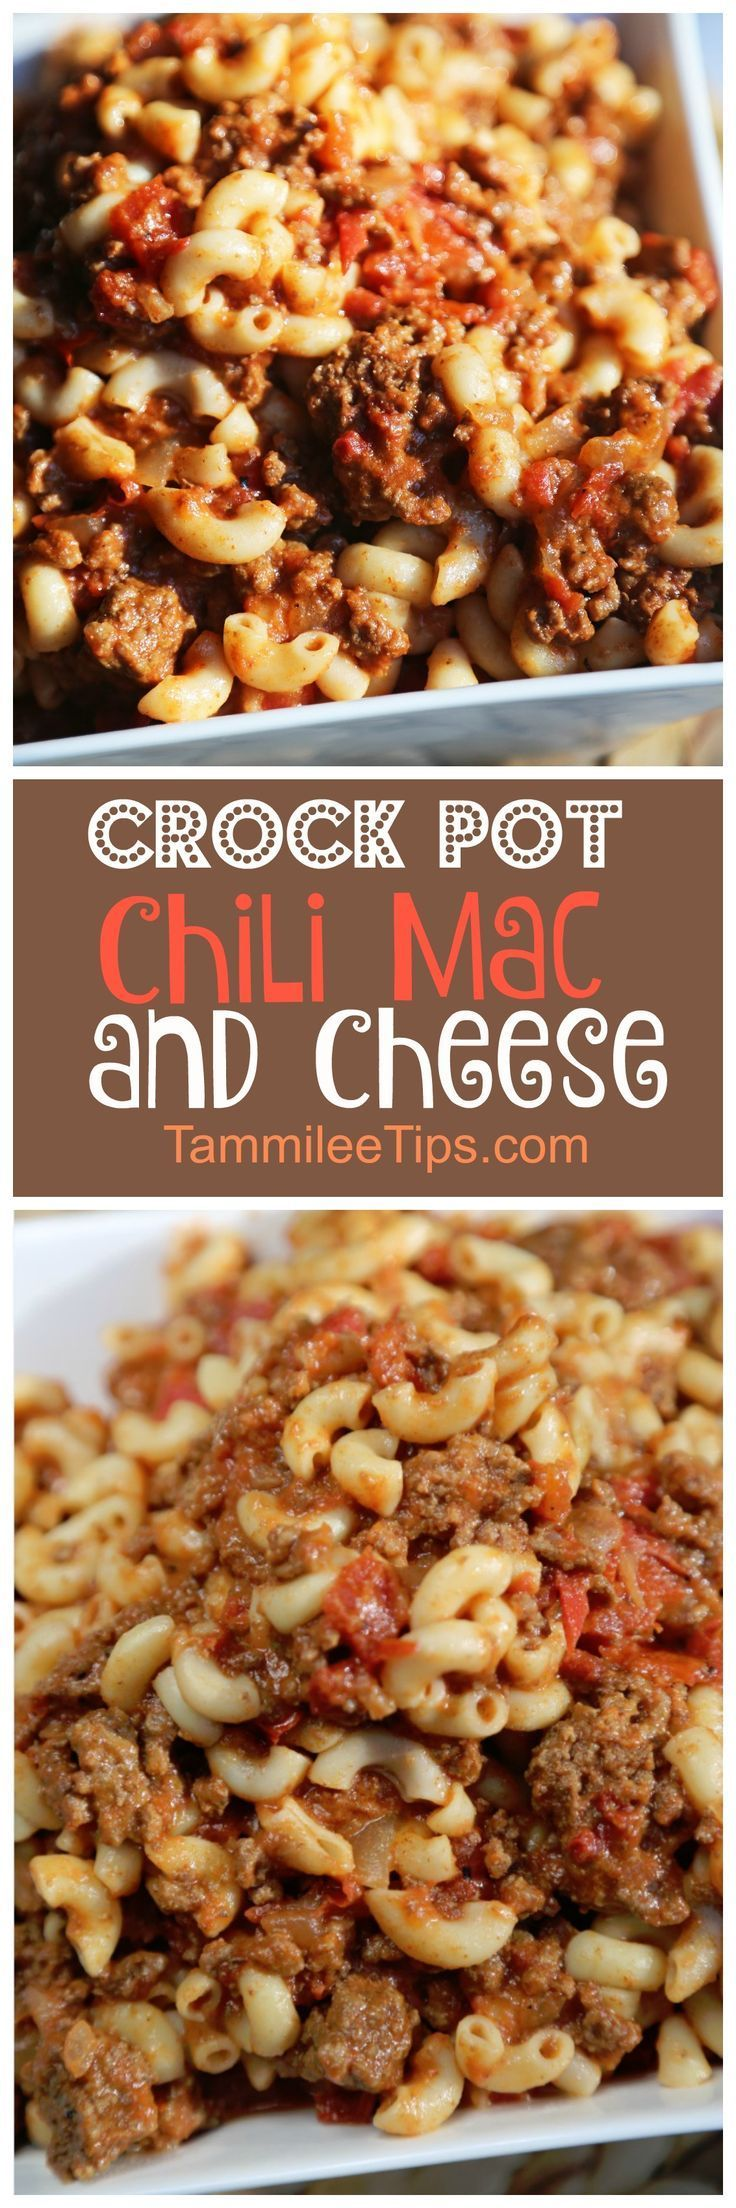 Simple, easy to make Crock Pot Chili Mac and Cheese Recipe! The slow cooker does all the work! Perfect for family dinners! Save your dishes and use the crockpot!  Hamburger, Pasta, Chili and more makes this a delicious recipe everyone will love!  via /tam/